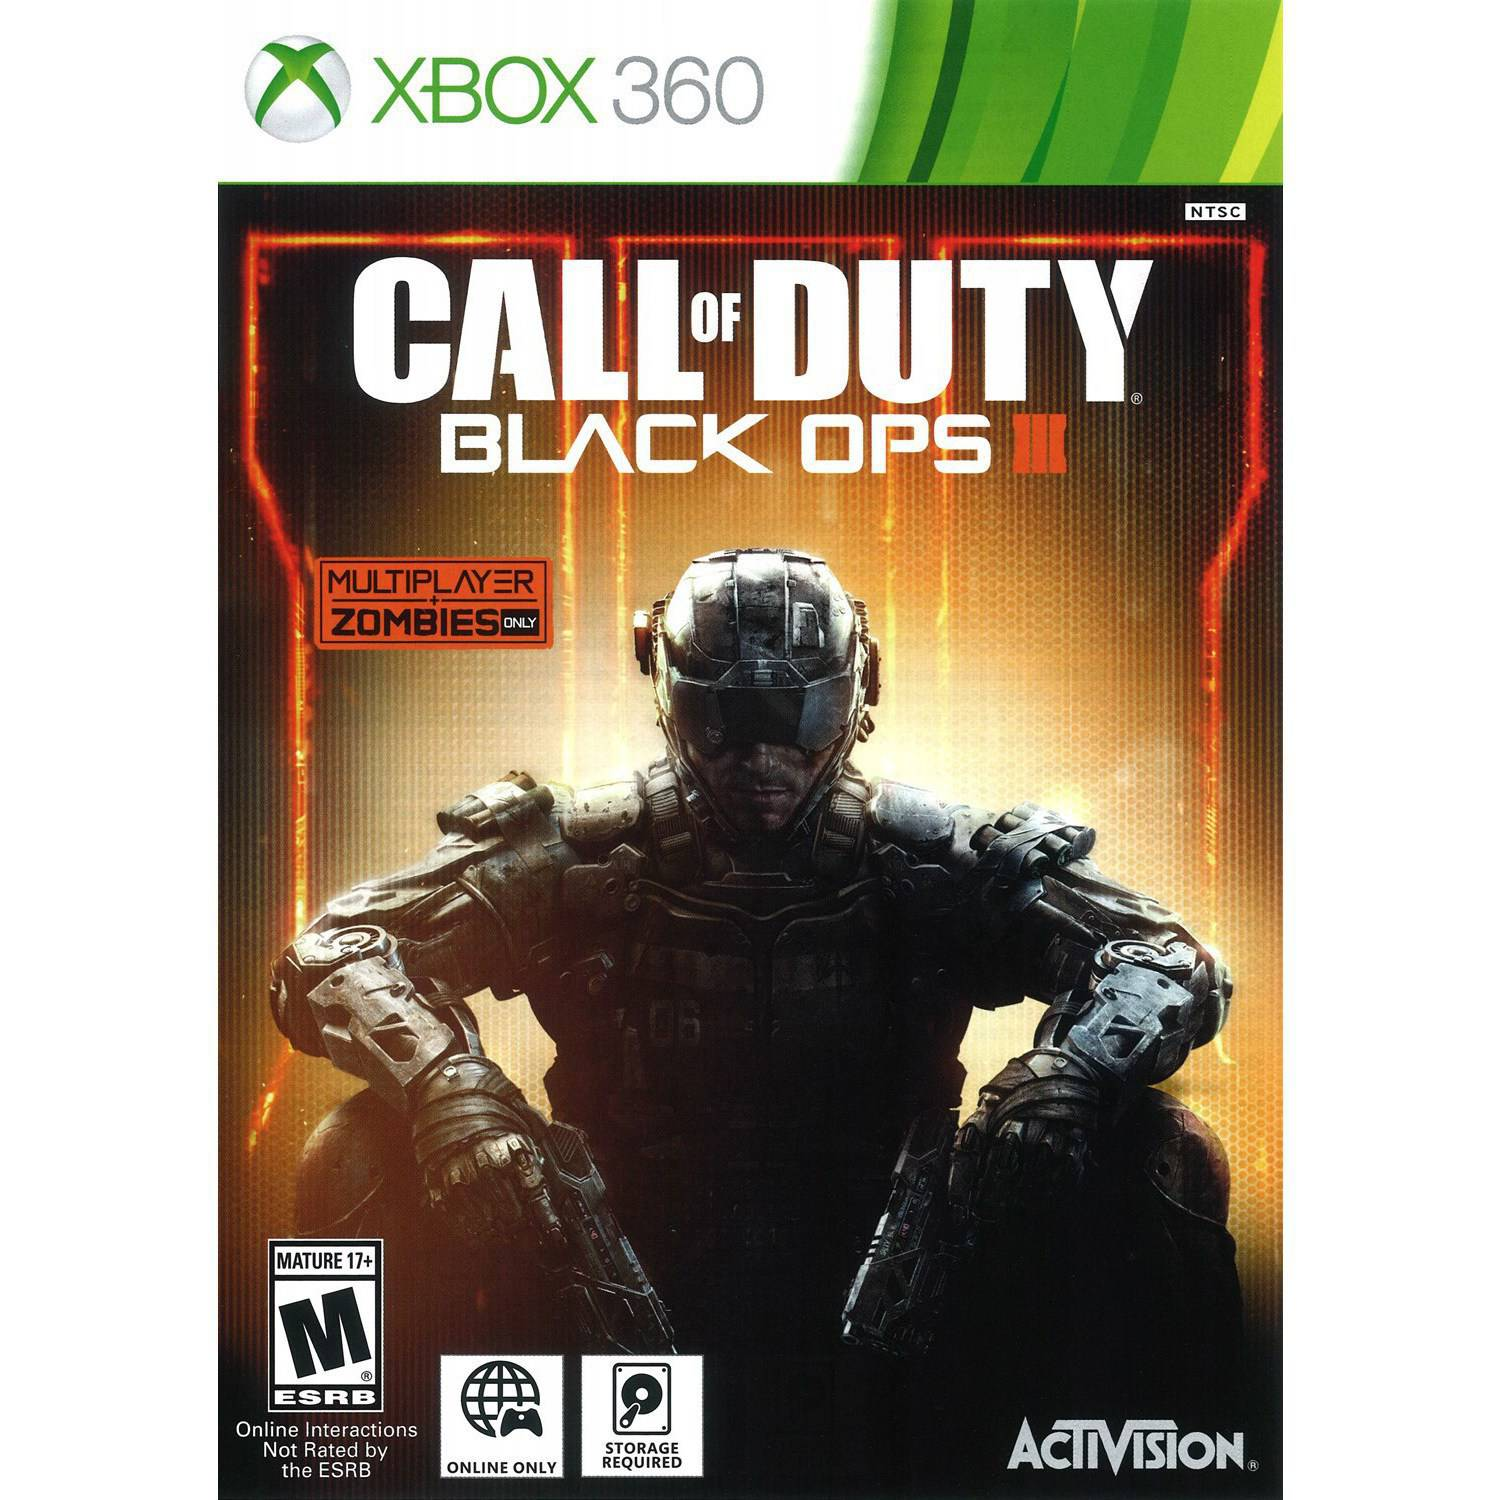 Call Of Duty Black Ops 3 (Xbox 360) - Pre-Owned